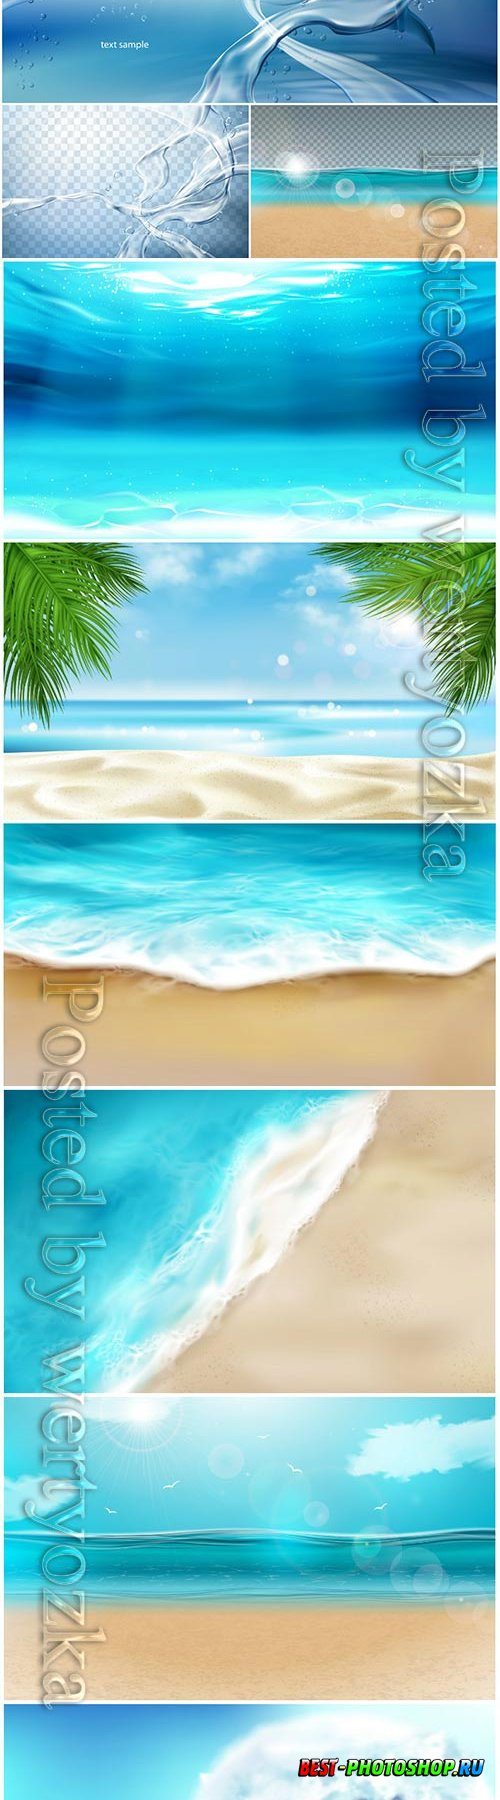 Sea wave with foam splashing on beach vector illustration